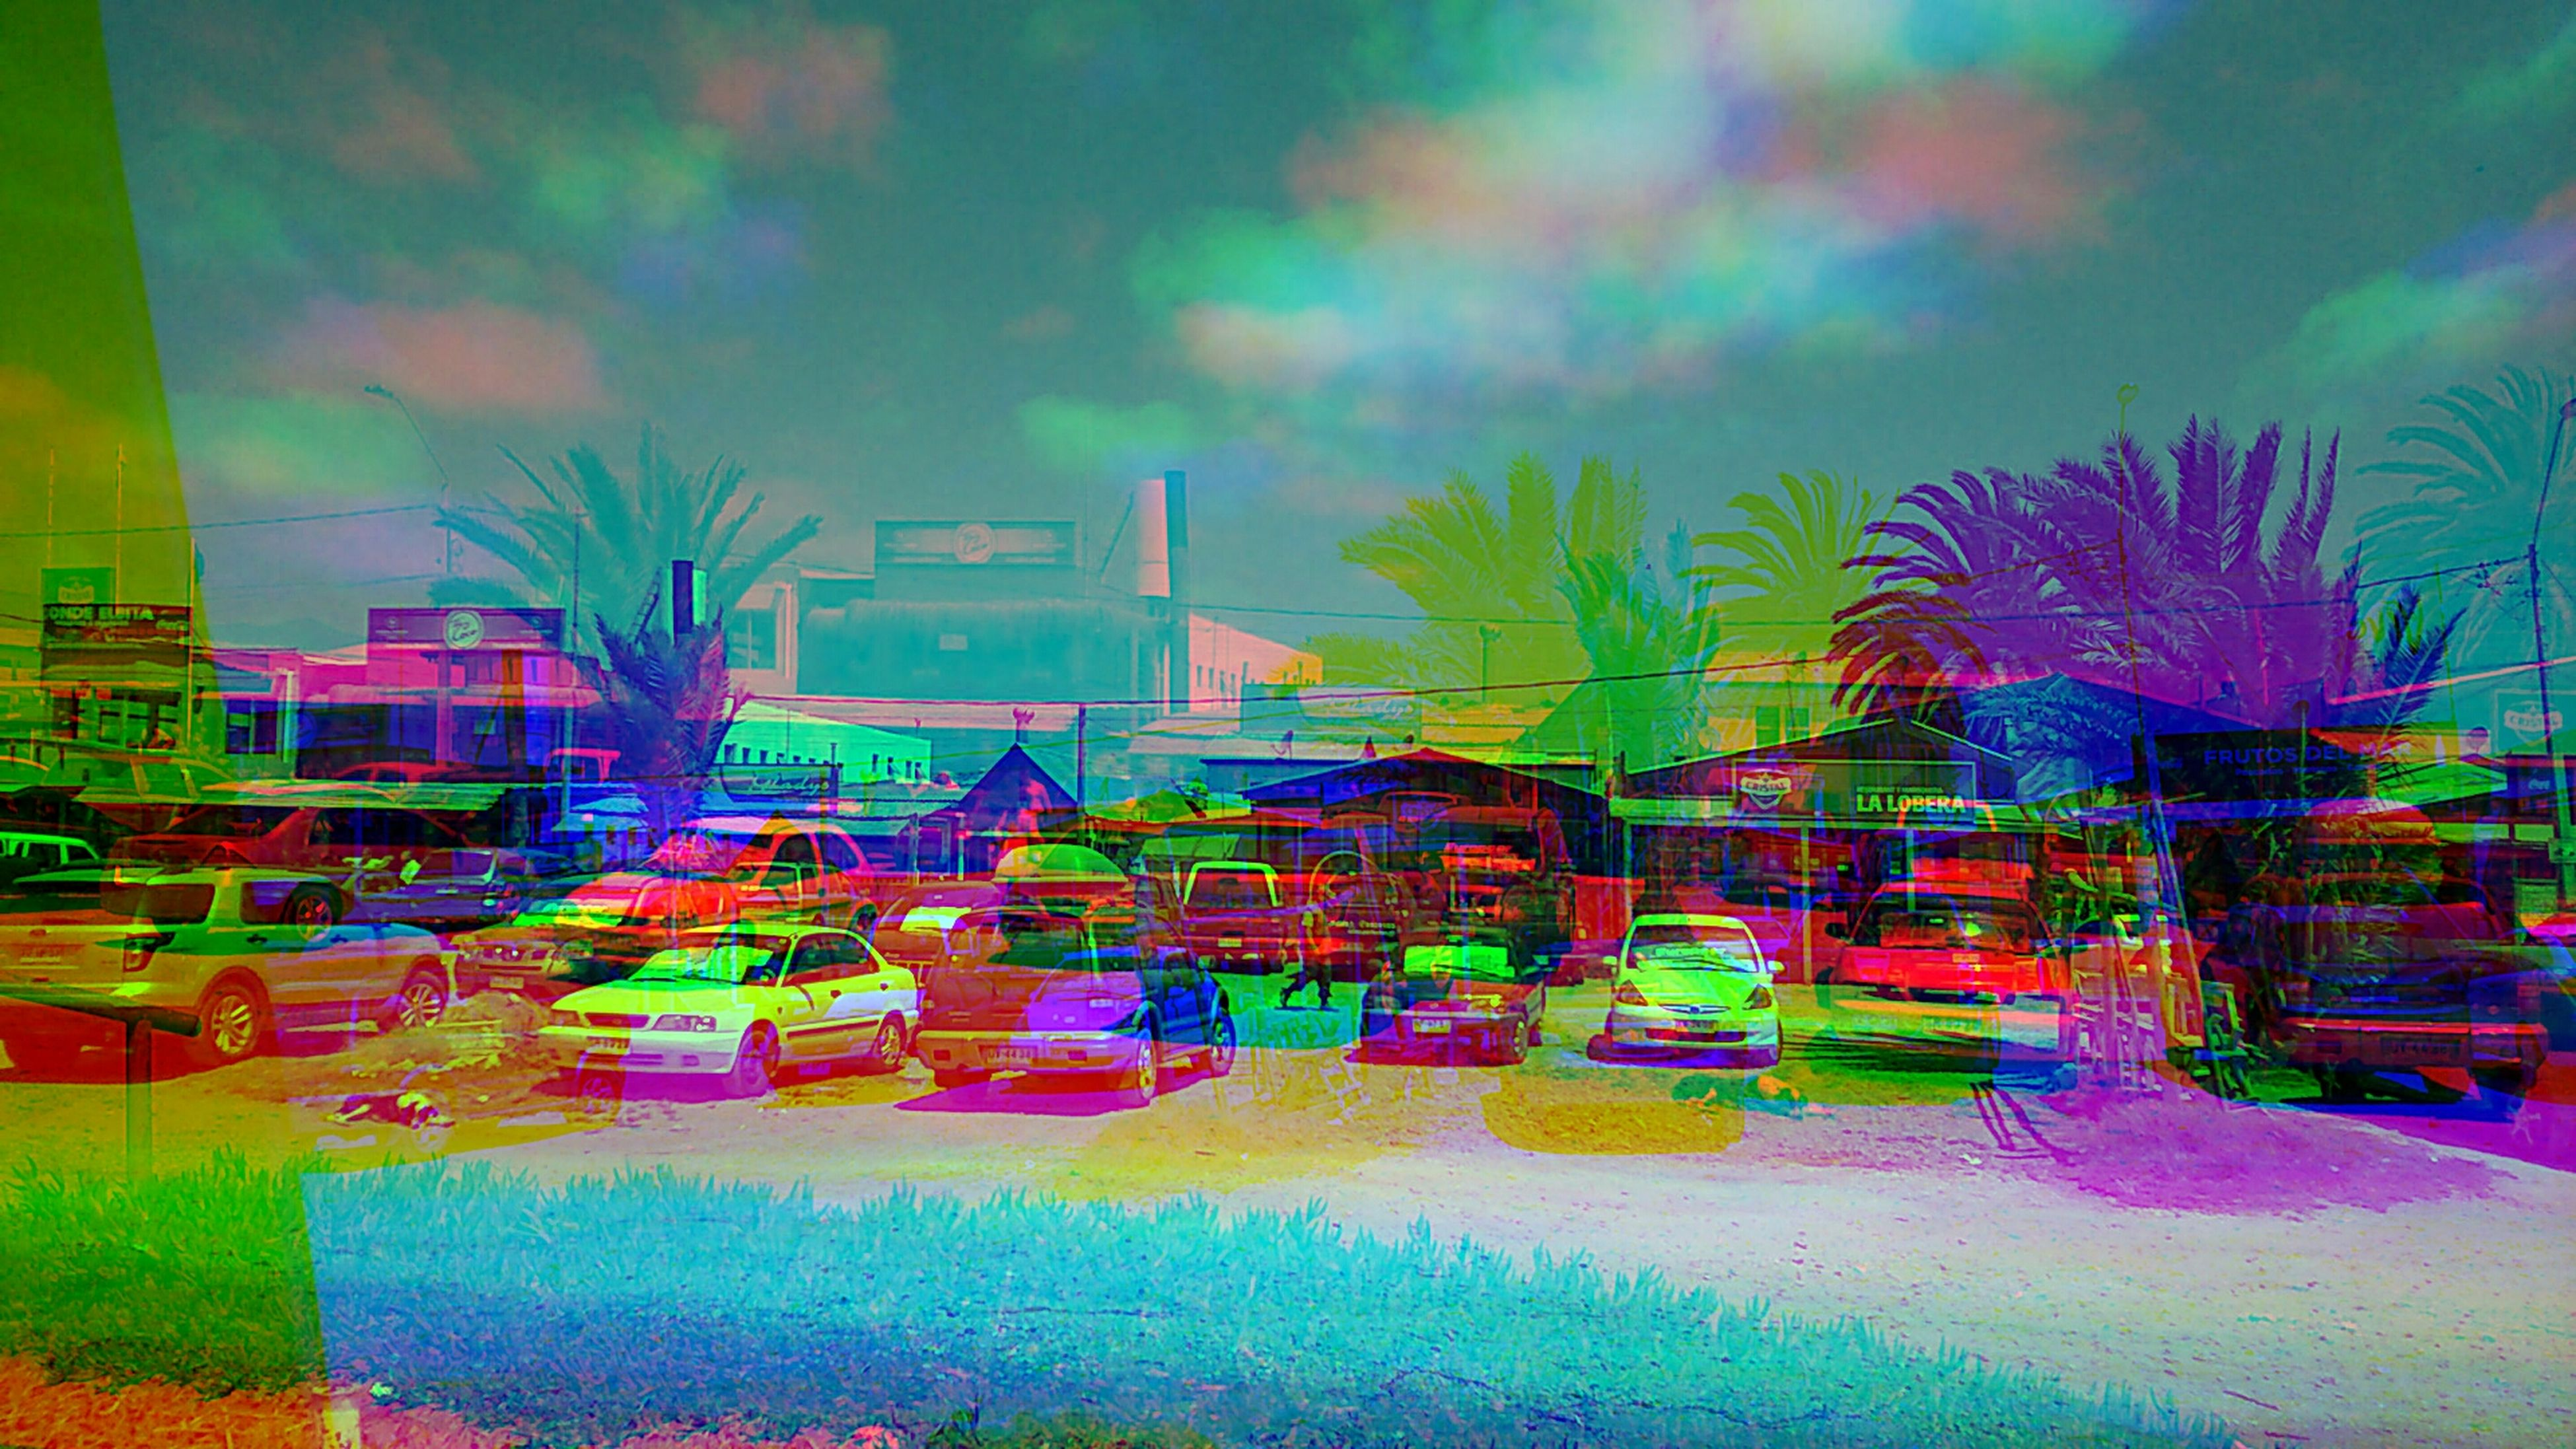 multi colored, creativity, sky, art and craft, art, graffiti, colorful, built structure, palm tree, beach, tree, architecture, outdoors, cloud - sky, building exterior, no people, water, sea, text, day